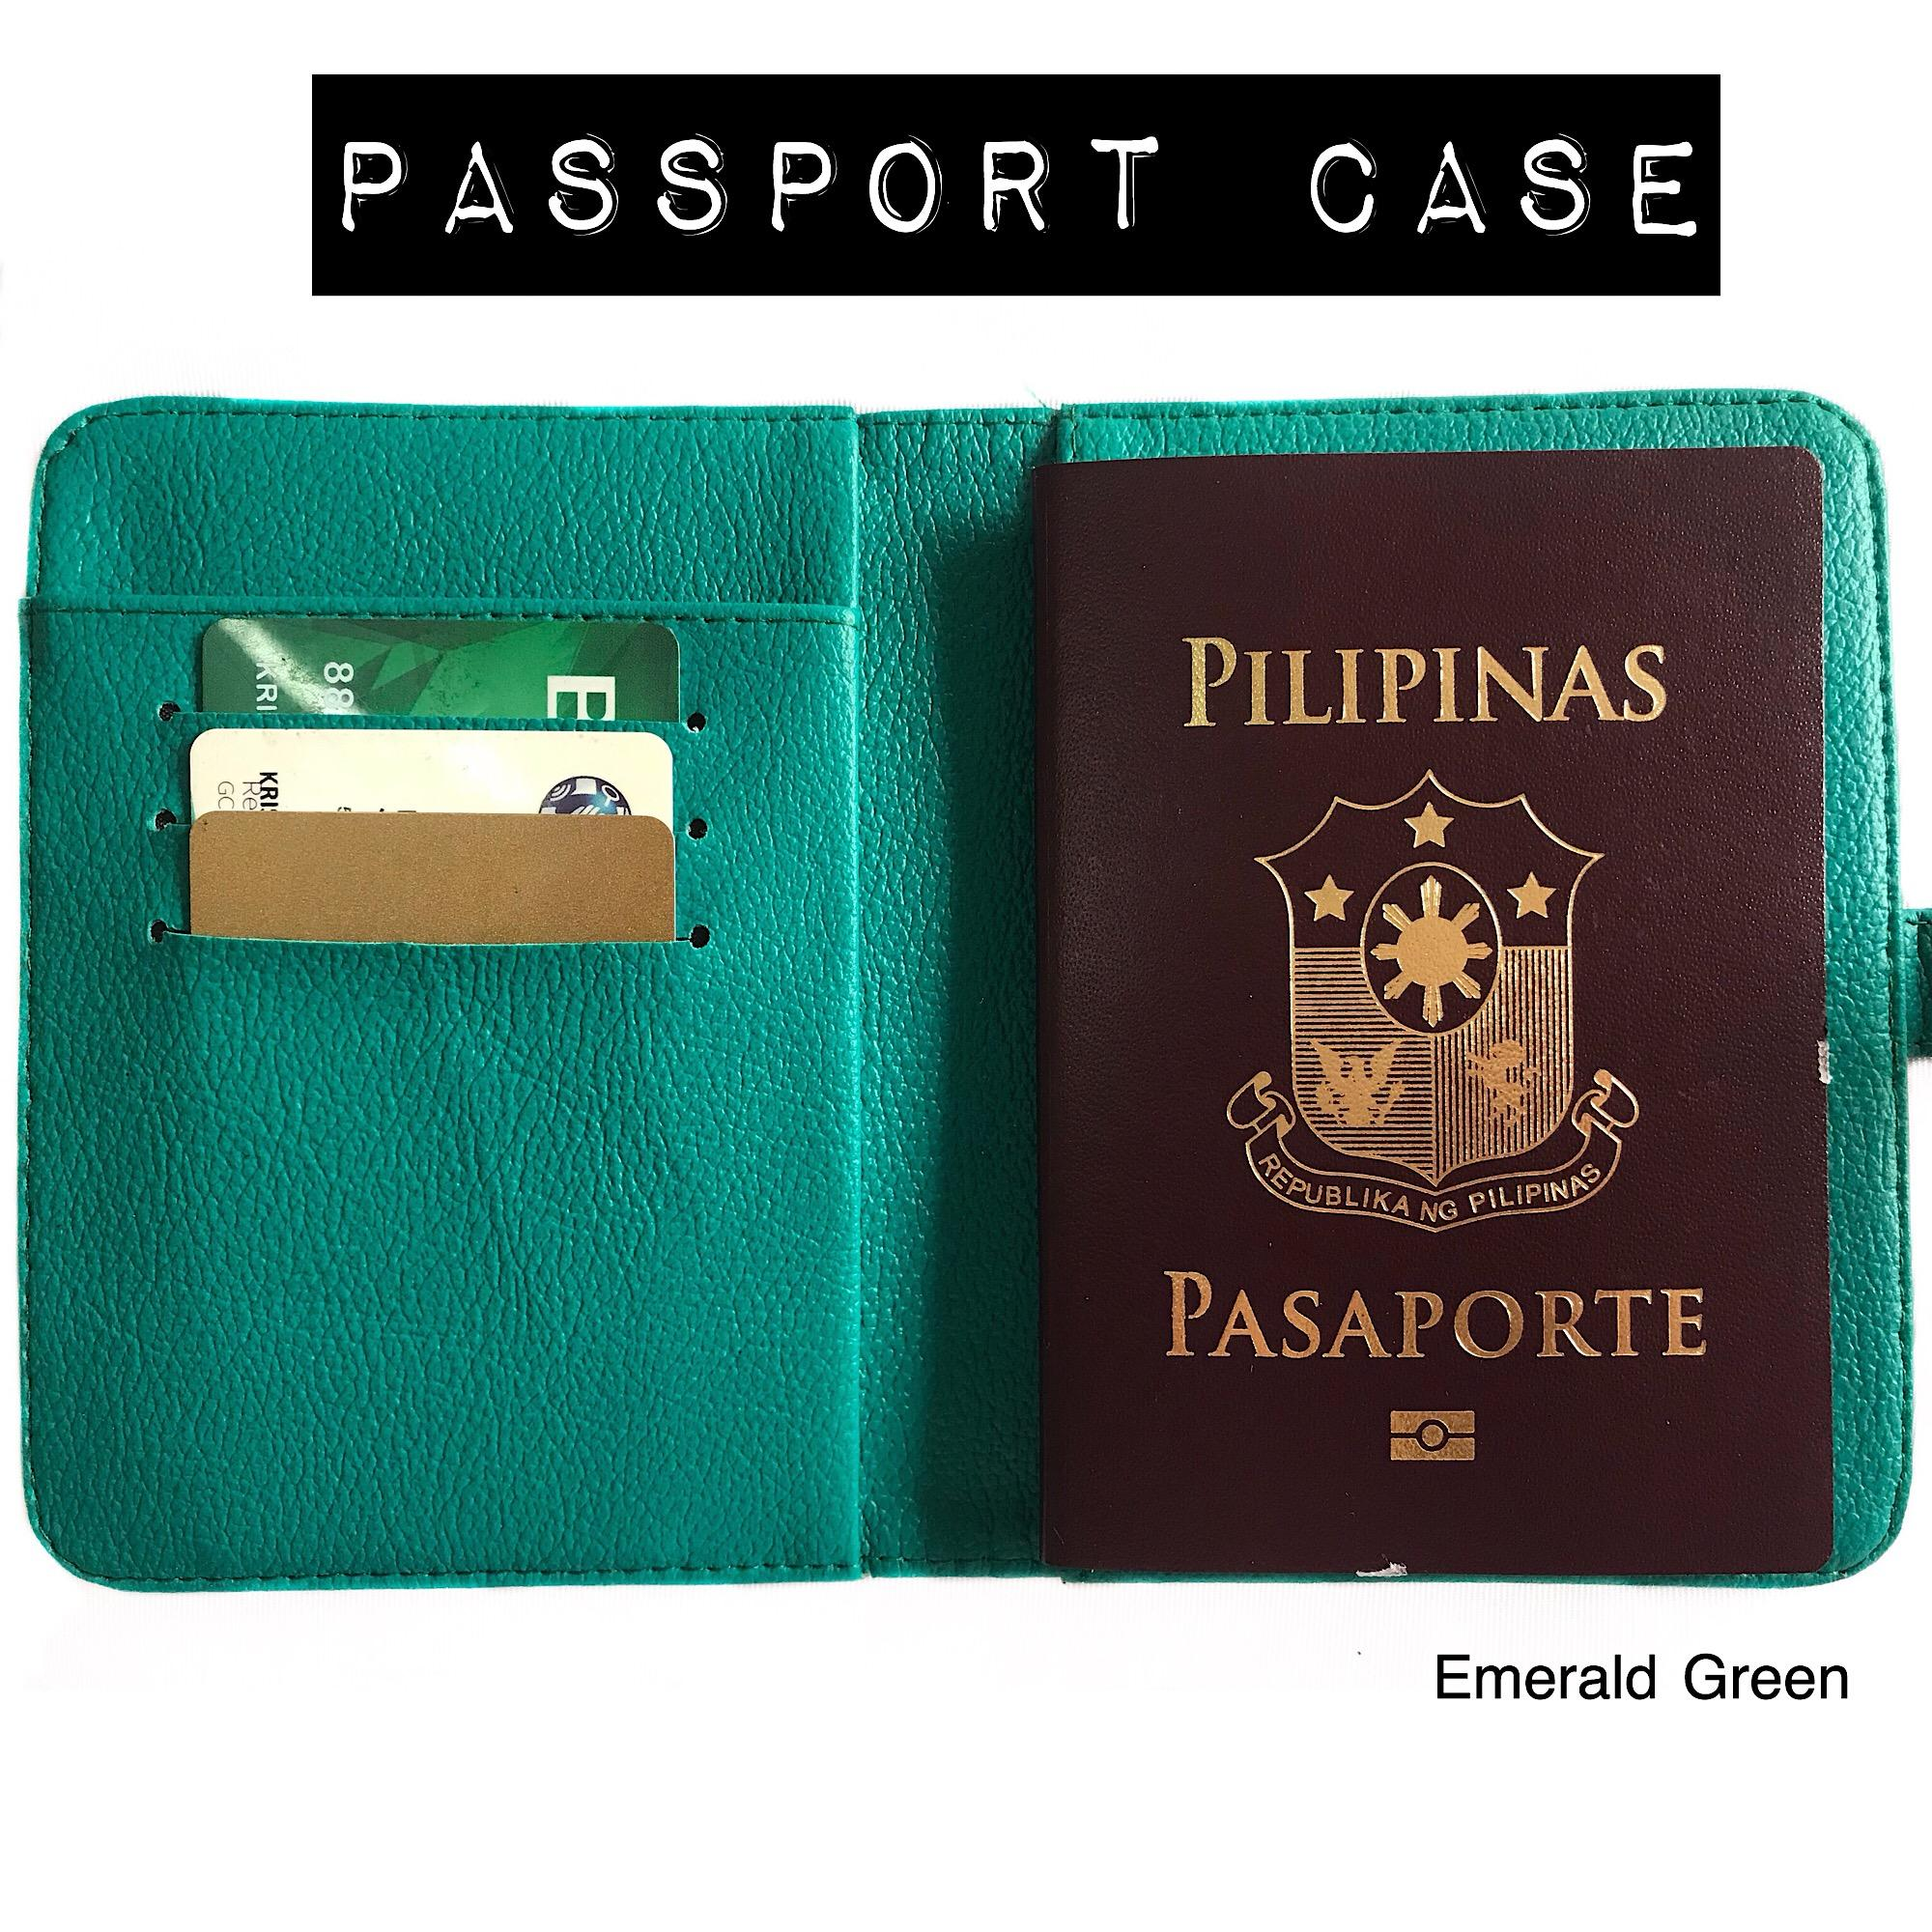 f8a36b7df Passport Covers for sale - Passport Holders Online Deals   Prices in  Philippines